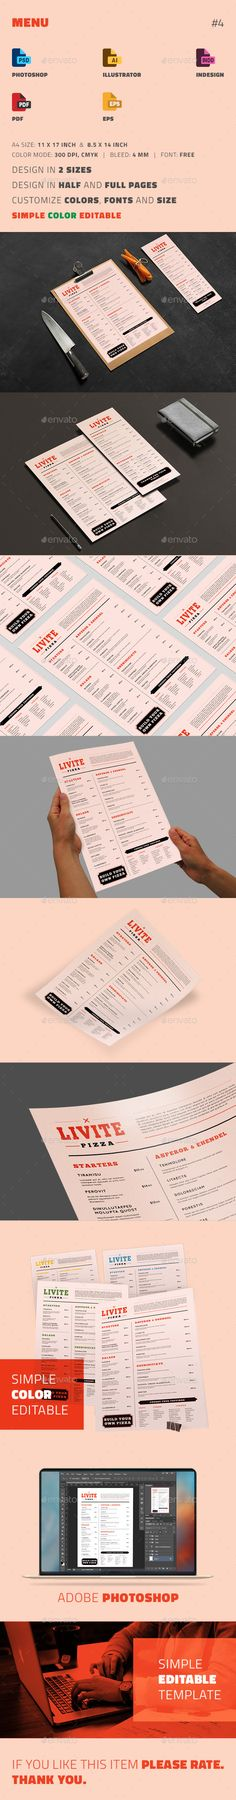 Minimal Menu Template Clean foods, Design and Originals - cafe menu templates free download